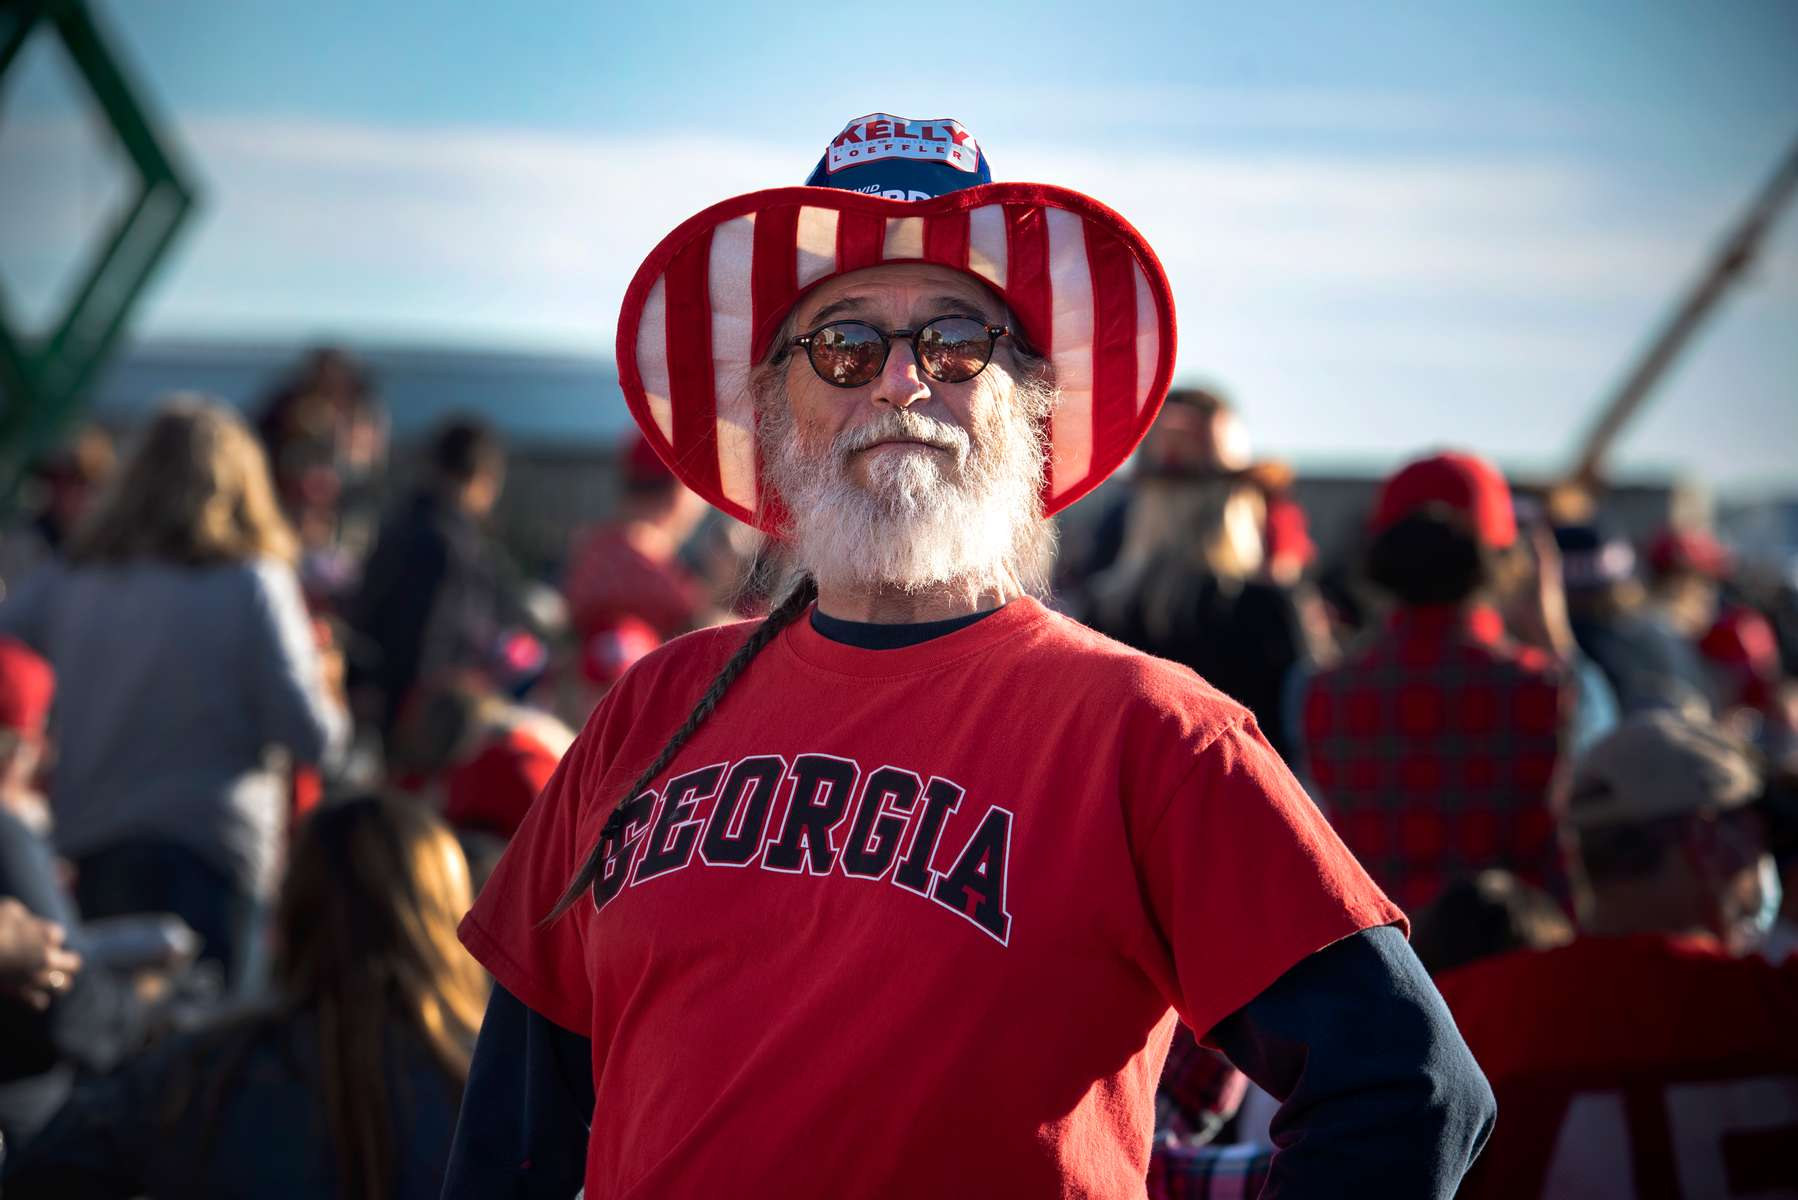 Thousands of Trump supporters converged on small town for Georgia Victory Rally to show support for President Donald Trump and two Republican incumbent U.S. senators Kelly Loeffler and David Perdue, who face democratic challengers in special run run-off election January 5, 2021. The election could decide control of the U.S. Senate.Pictured: Trump supporter waits for rally to begin